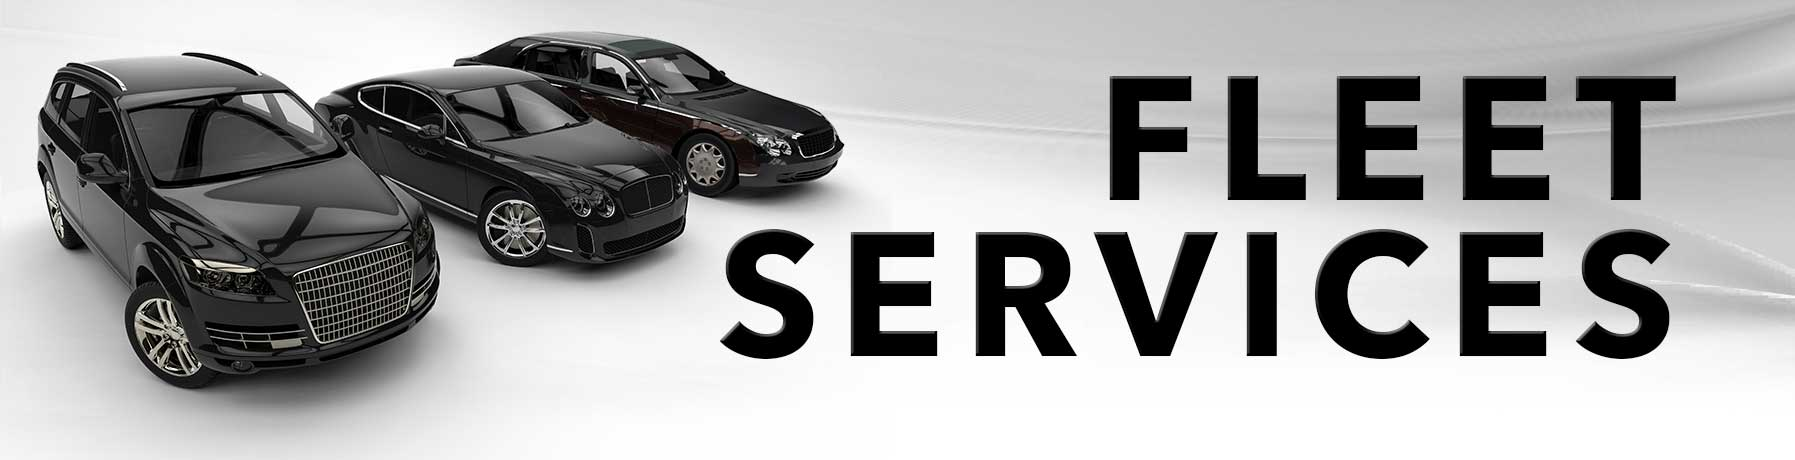 We provide fleet services